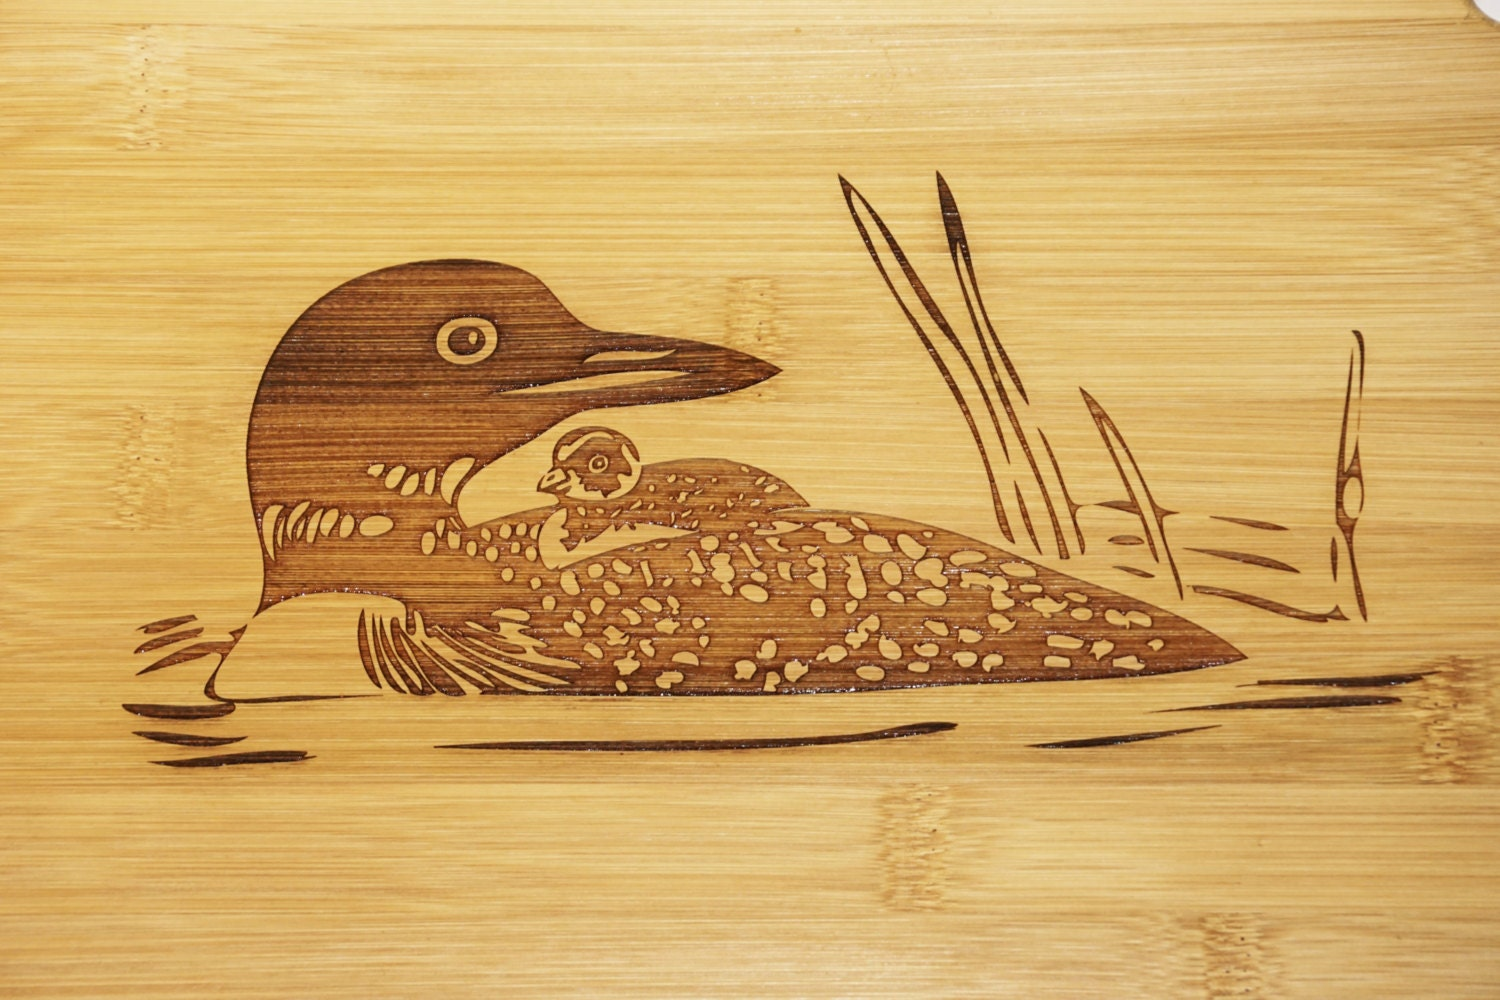 loon cutting board loon decor loon home decor lake house